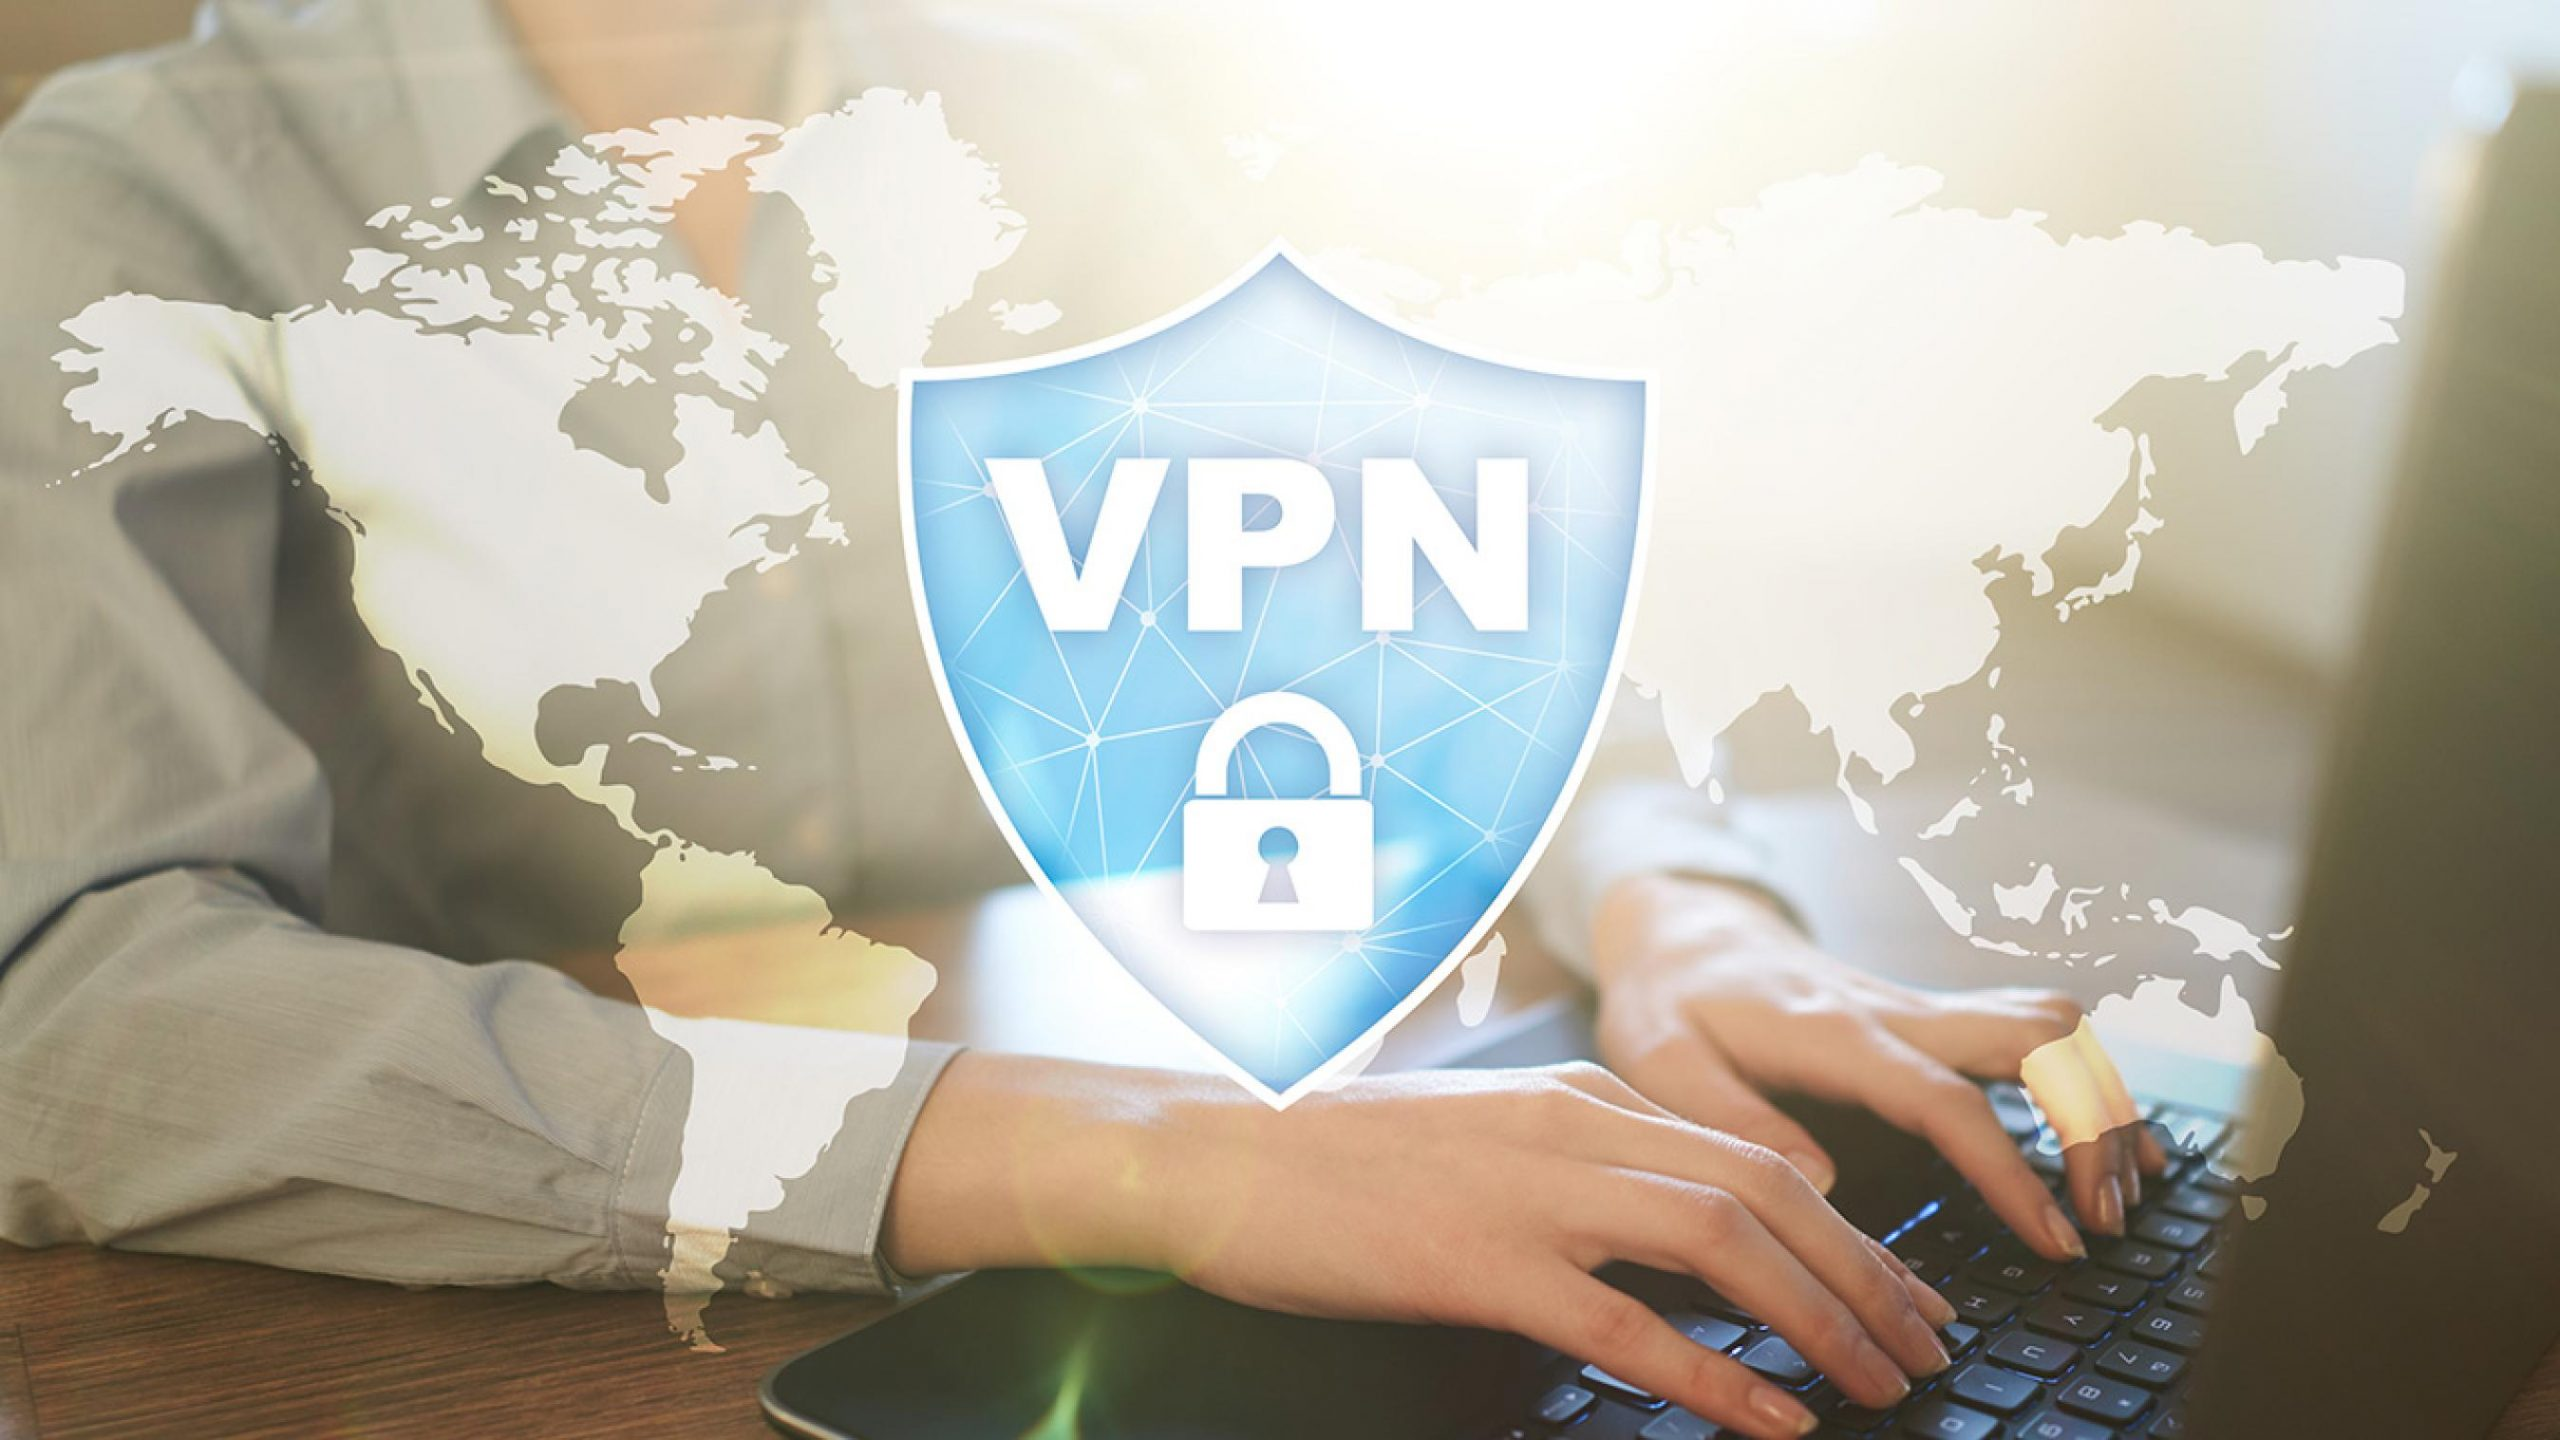 Should I leave my VPN on all the time?